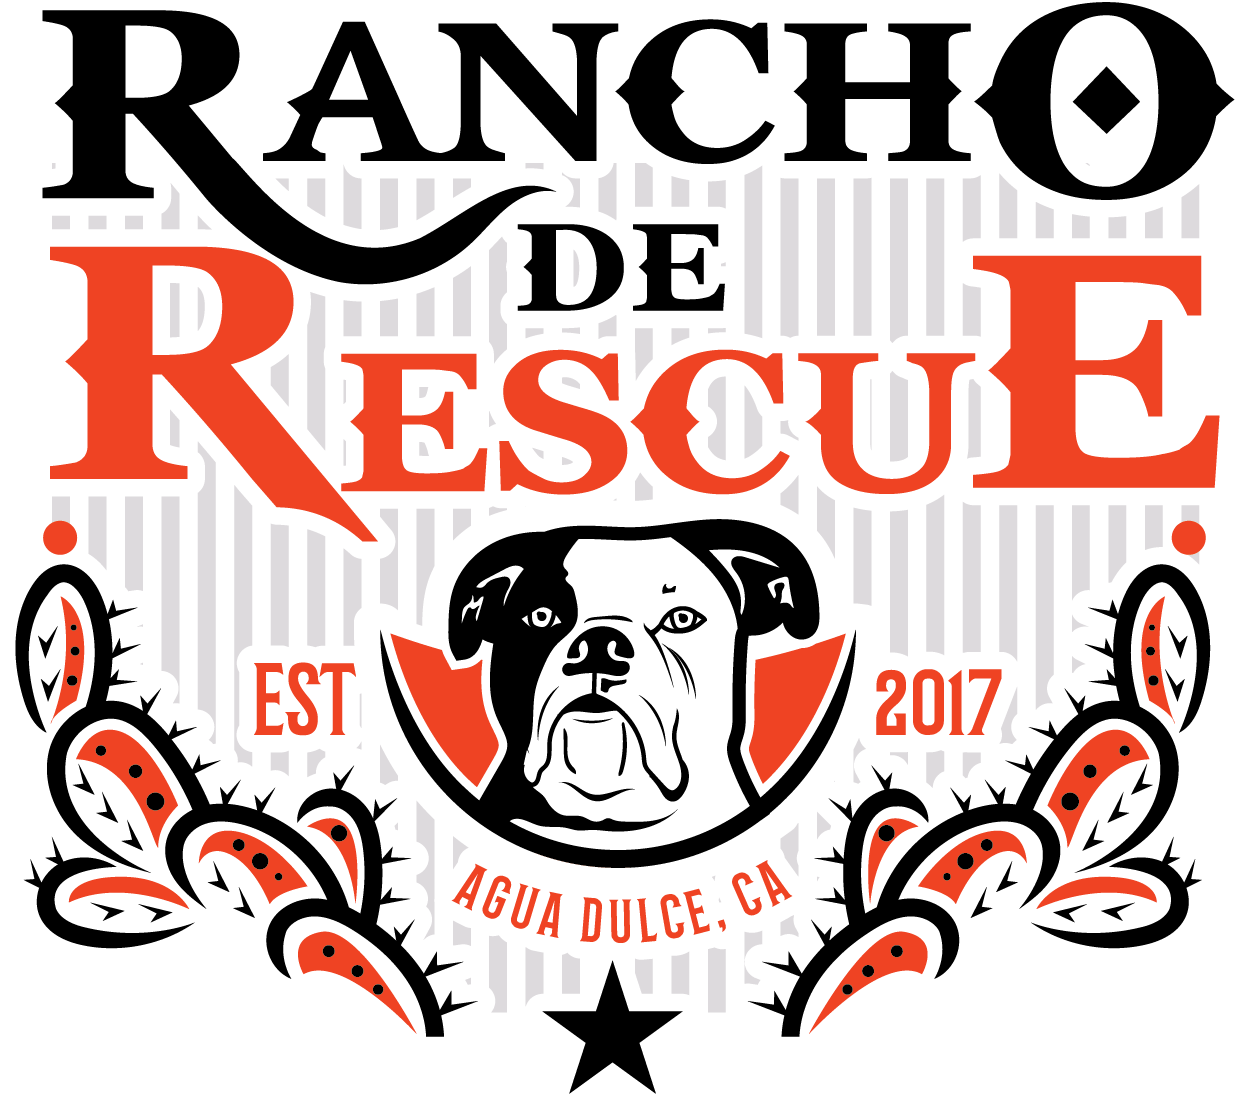 Rancho De Rescue